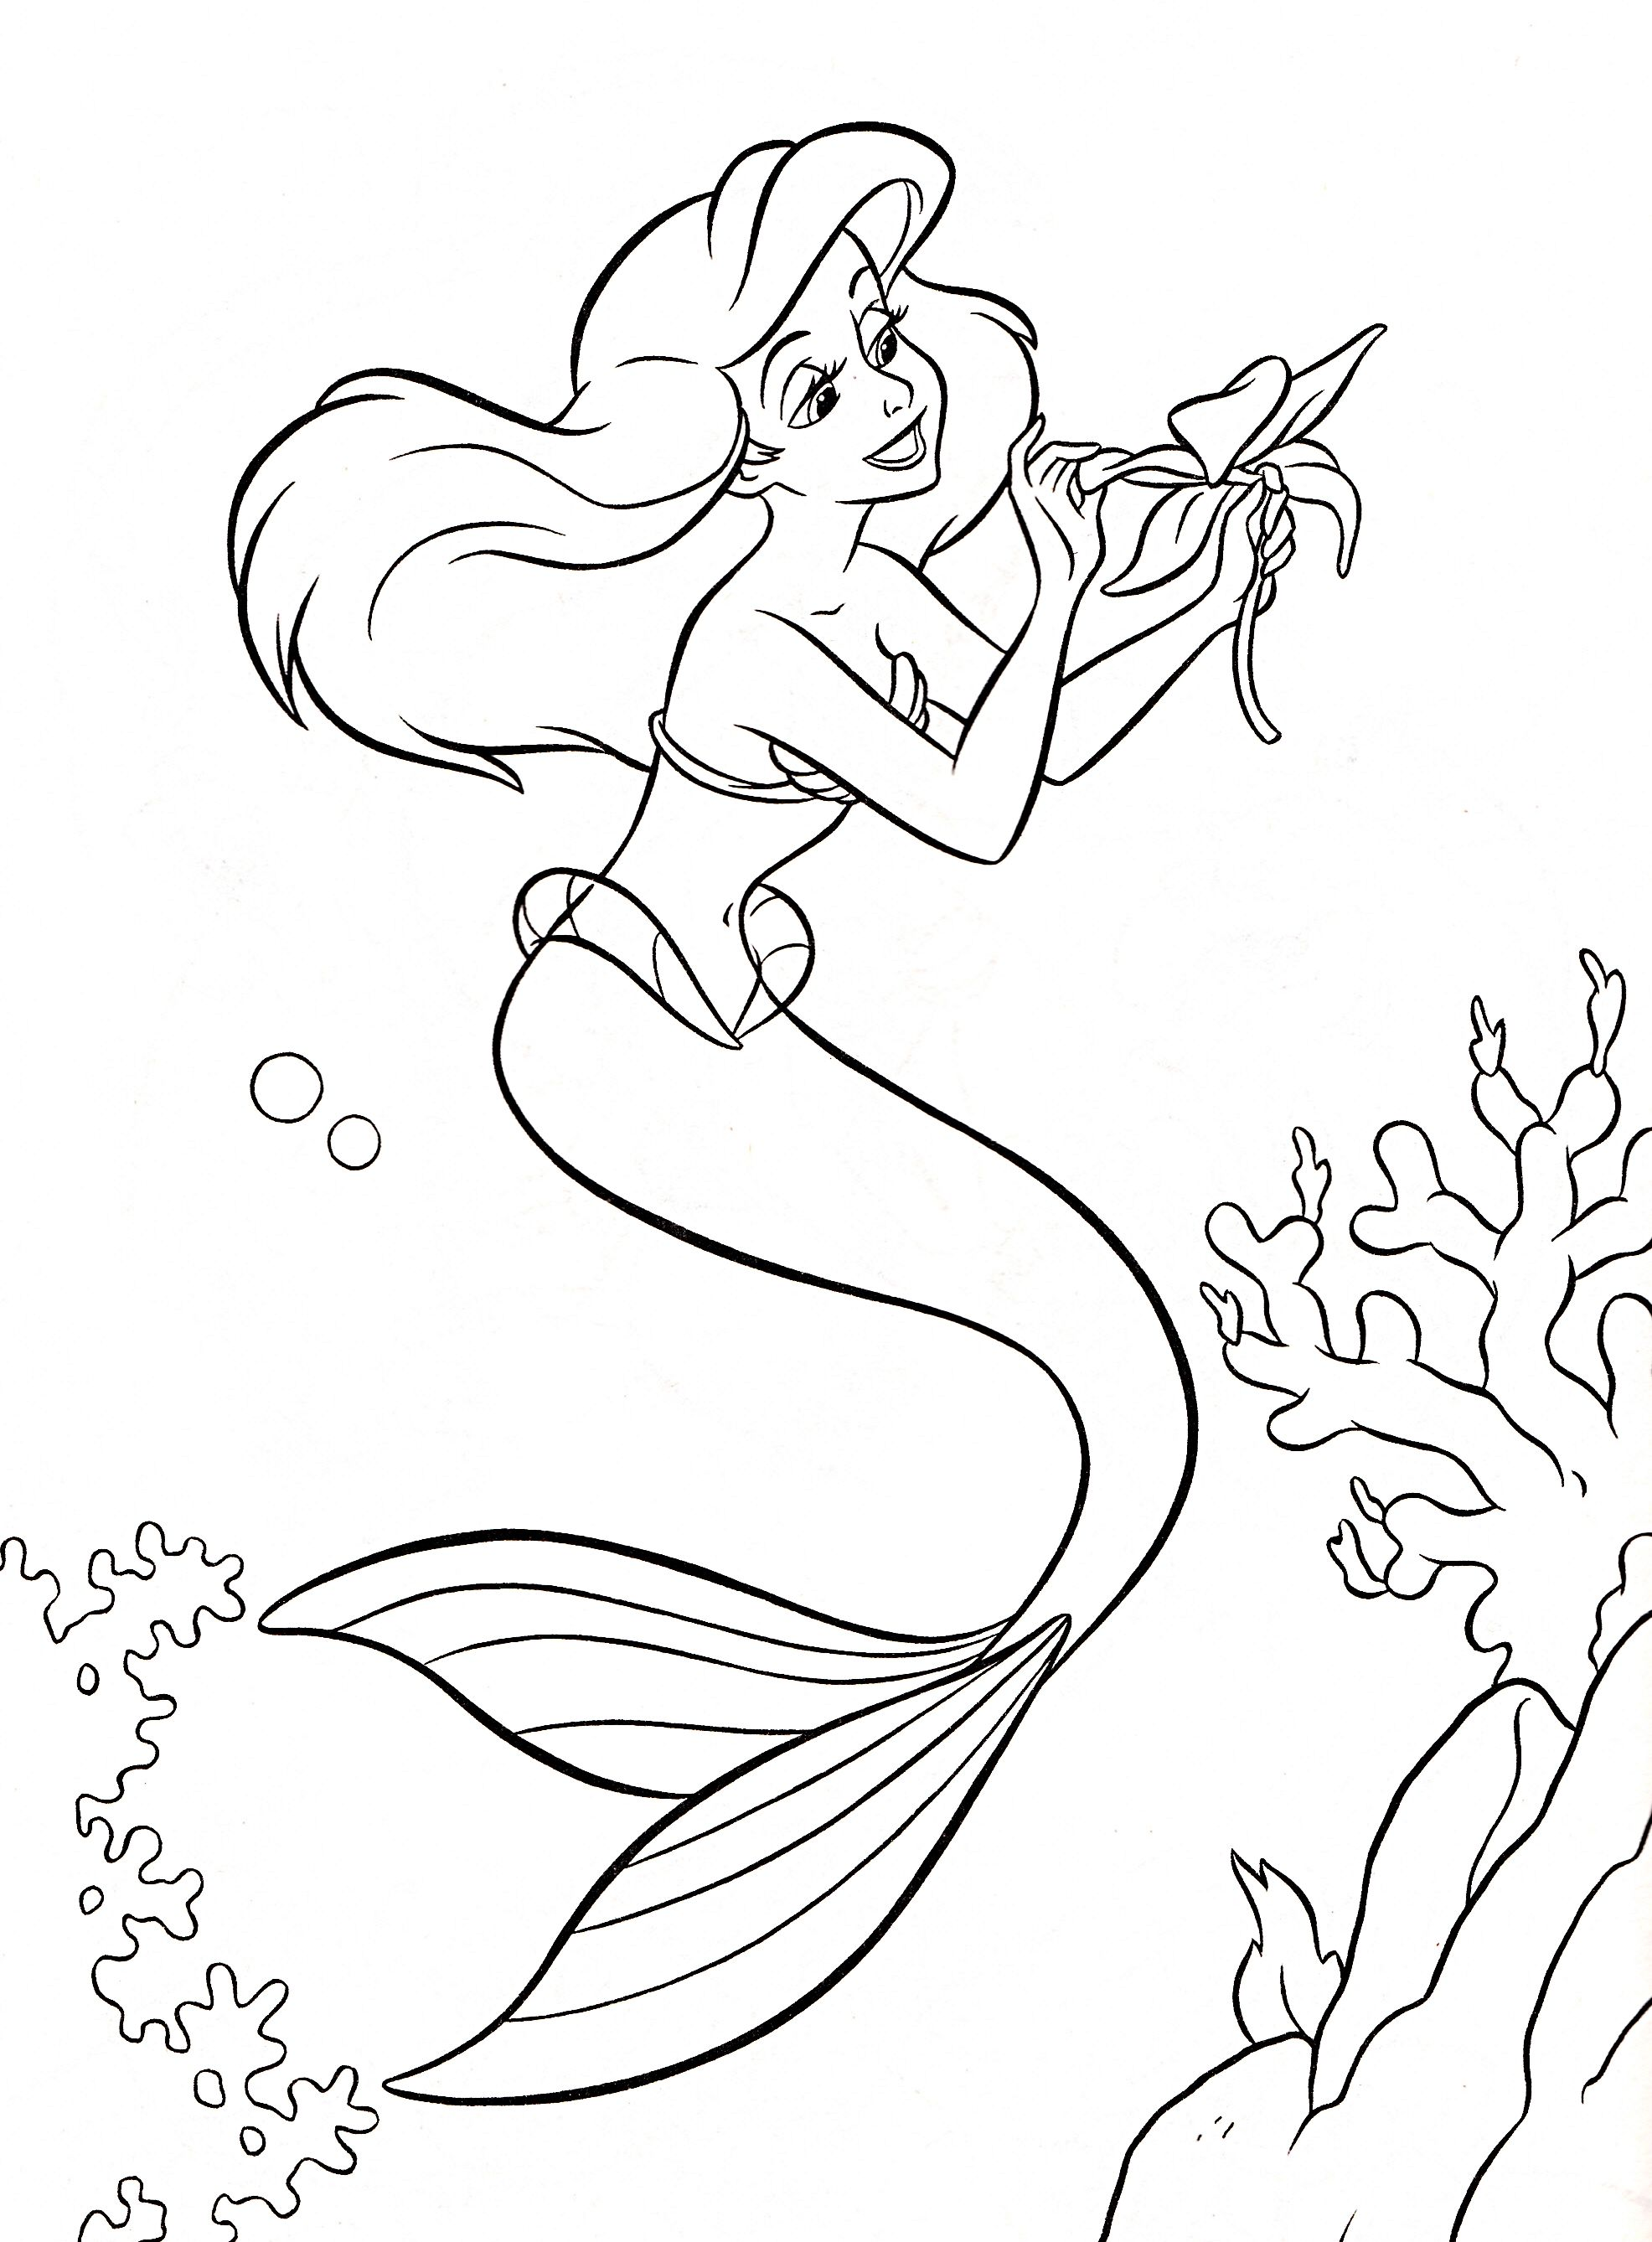 Dont Forget To Find Compatible Sites That Provide This Kind Of Activity Village Coloring Disney Princess